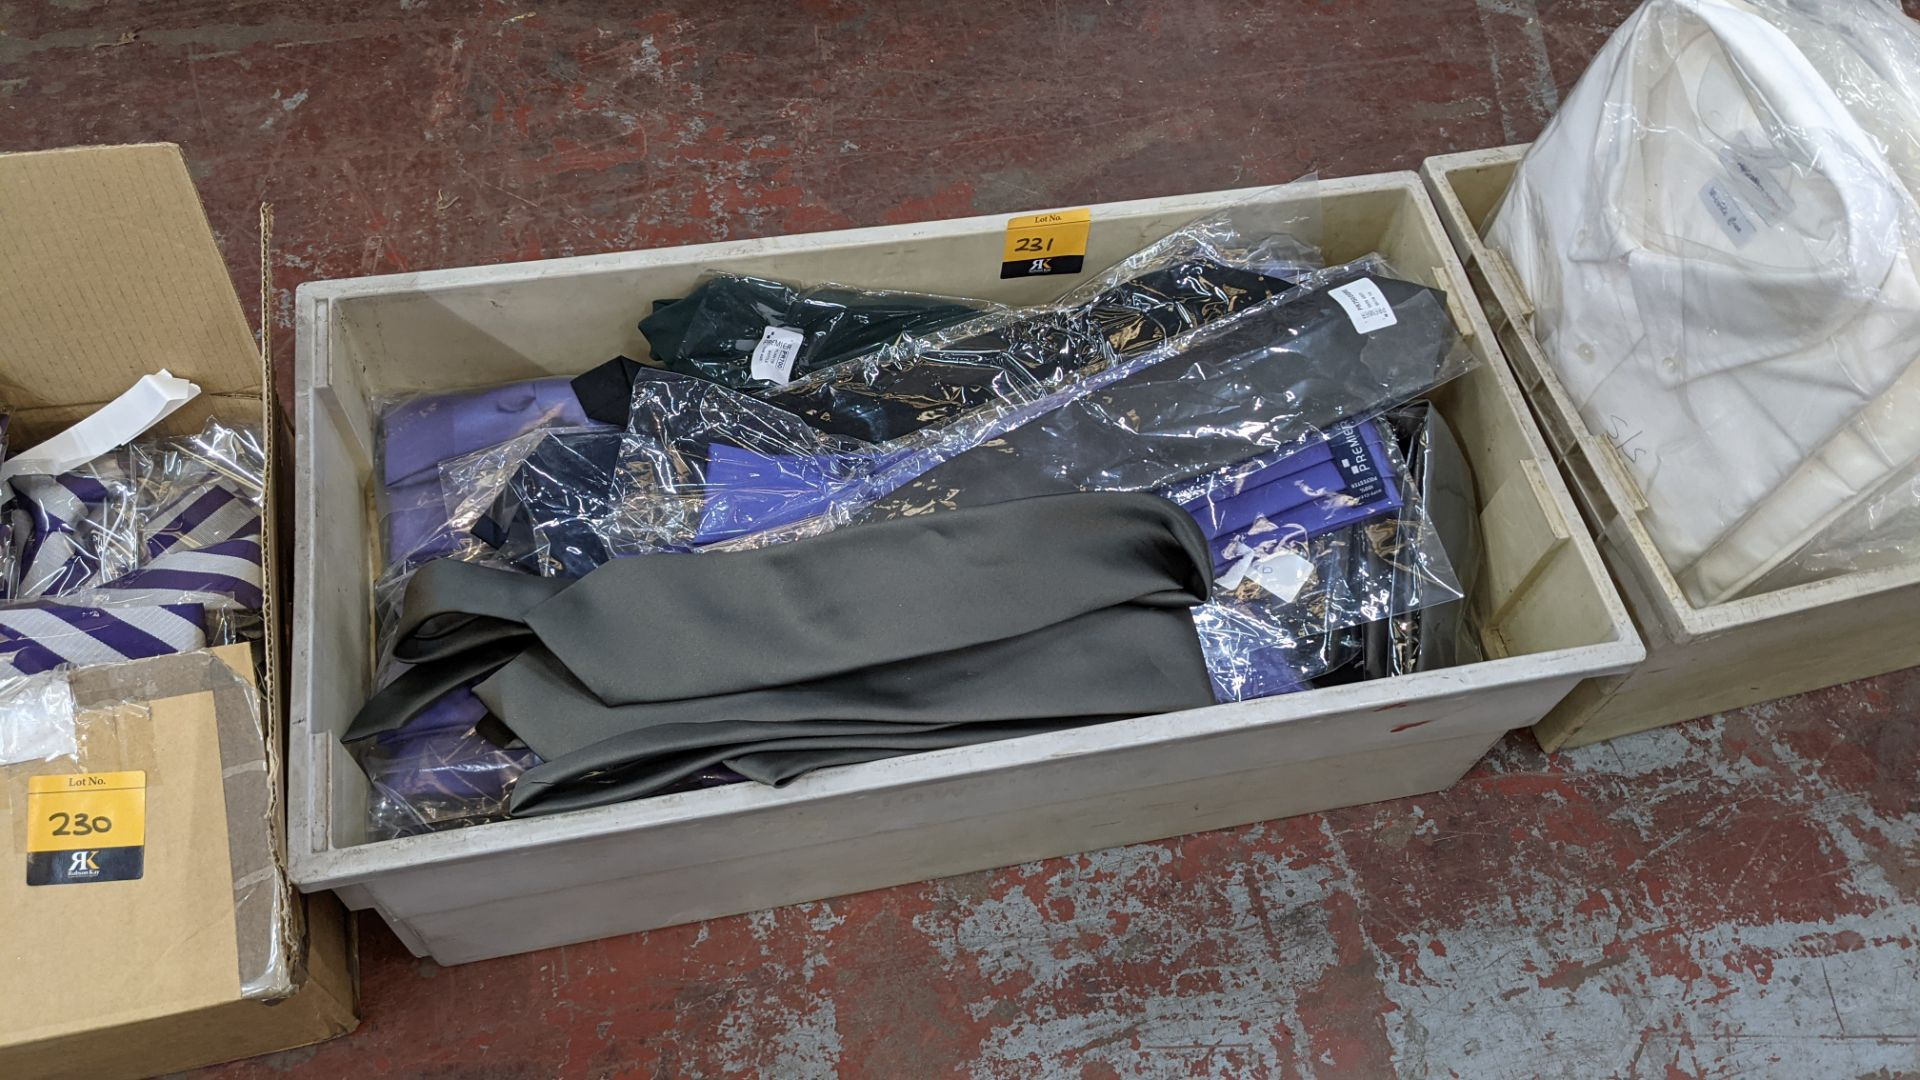 The contents of a crate of assorted ties. NB crate excluded